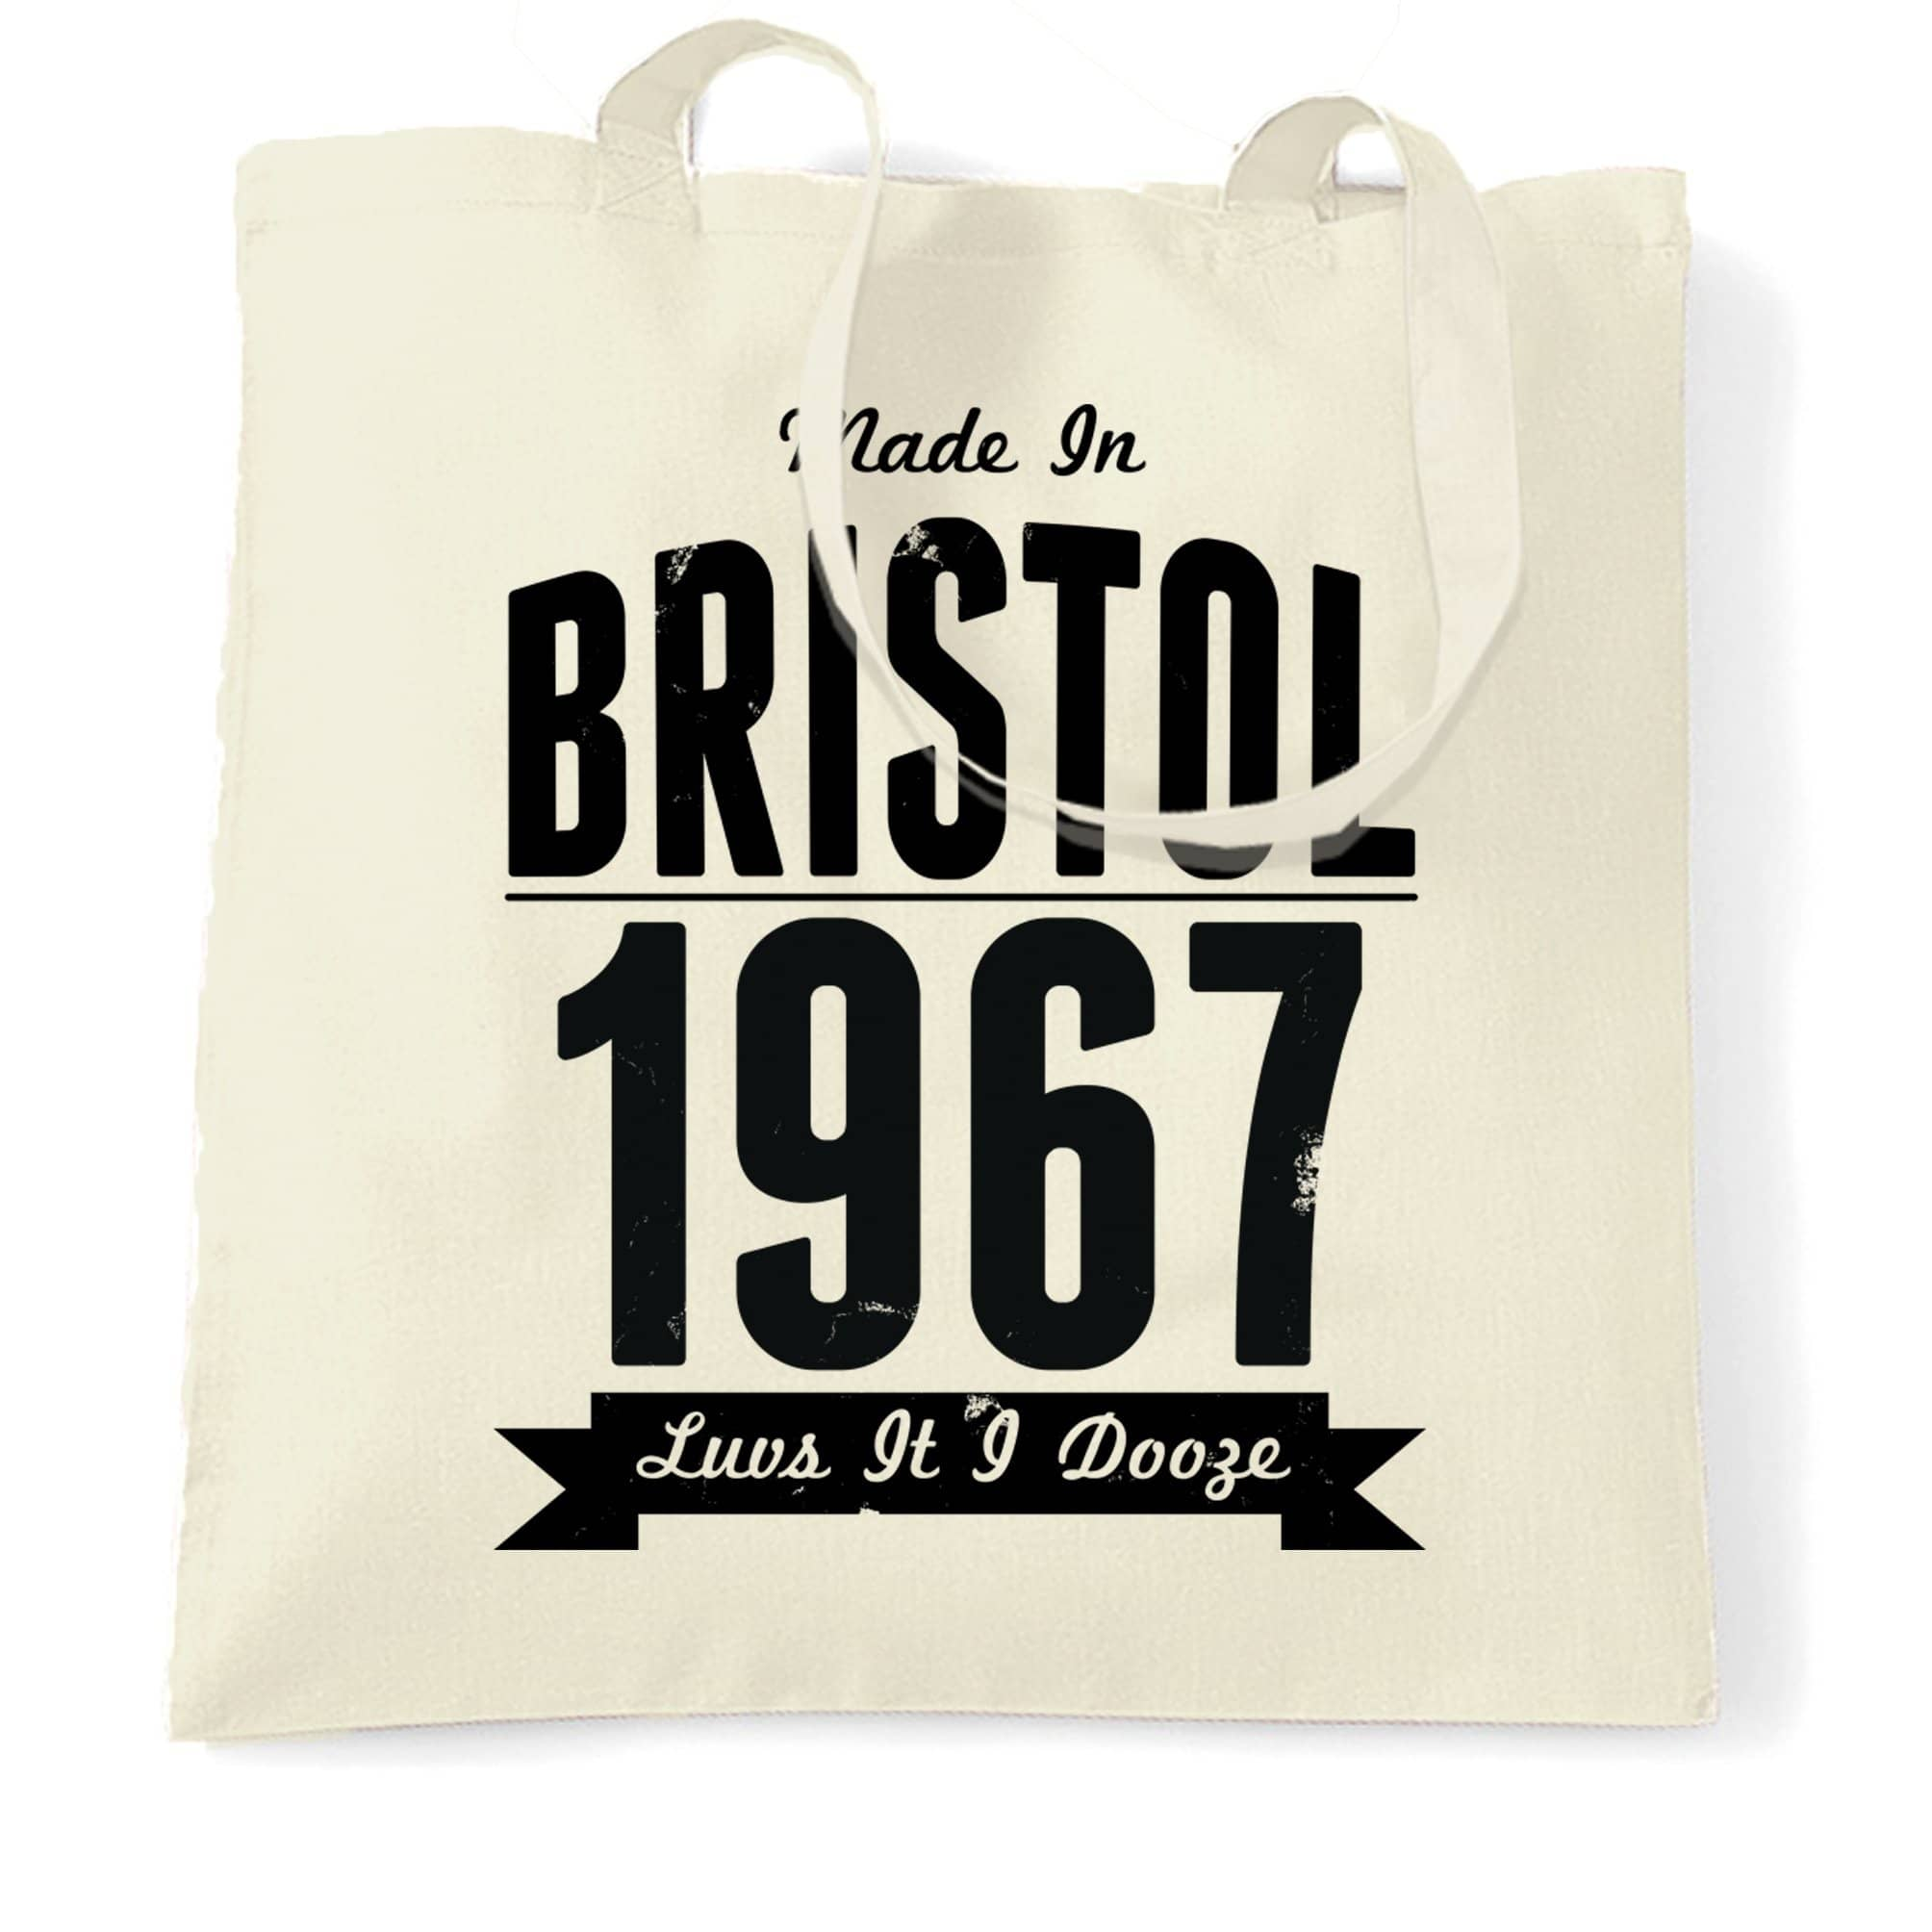 Birthday Tote Bag Made In Bristol, England 1967 Motto